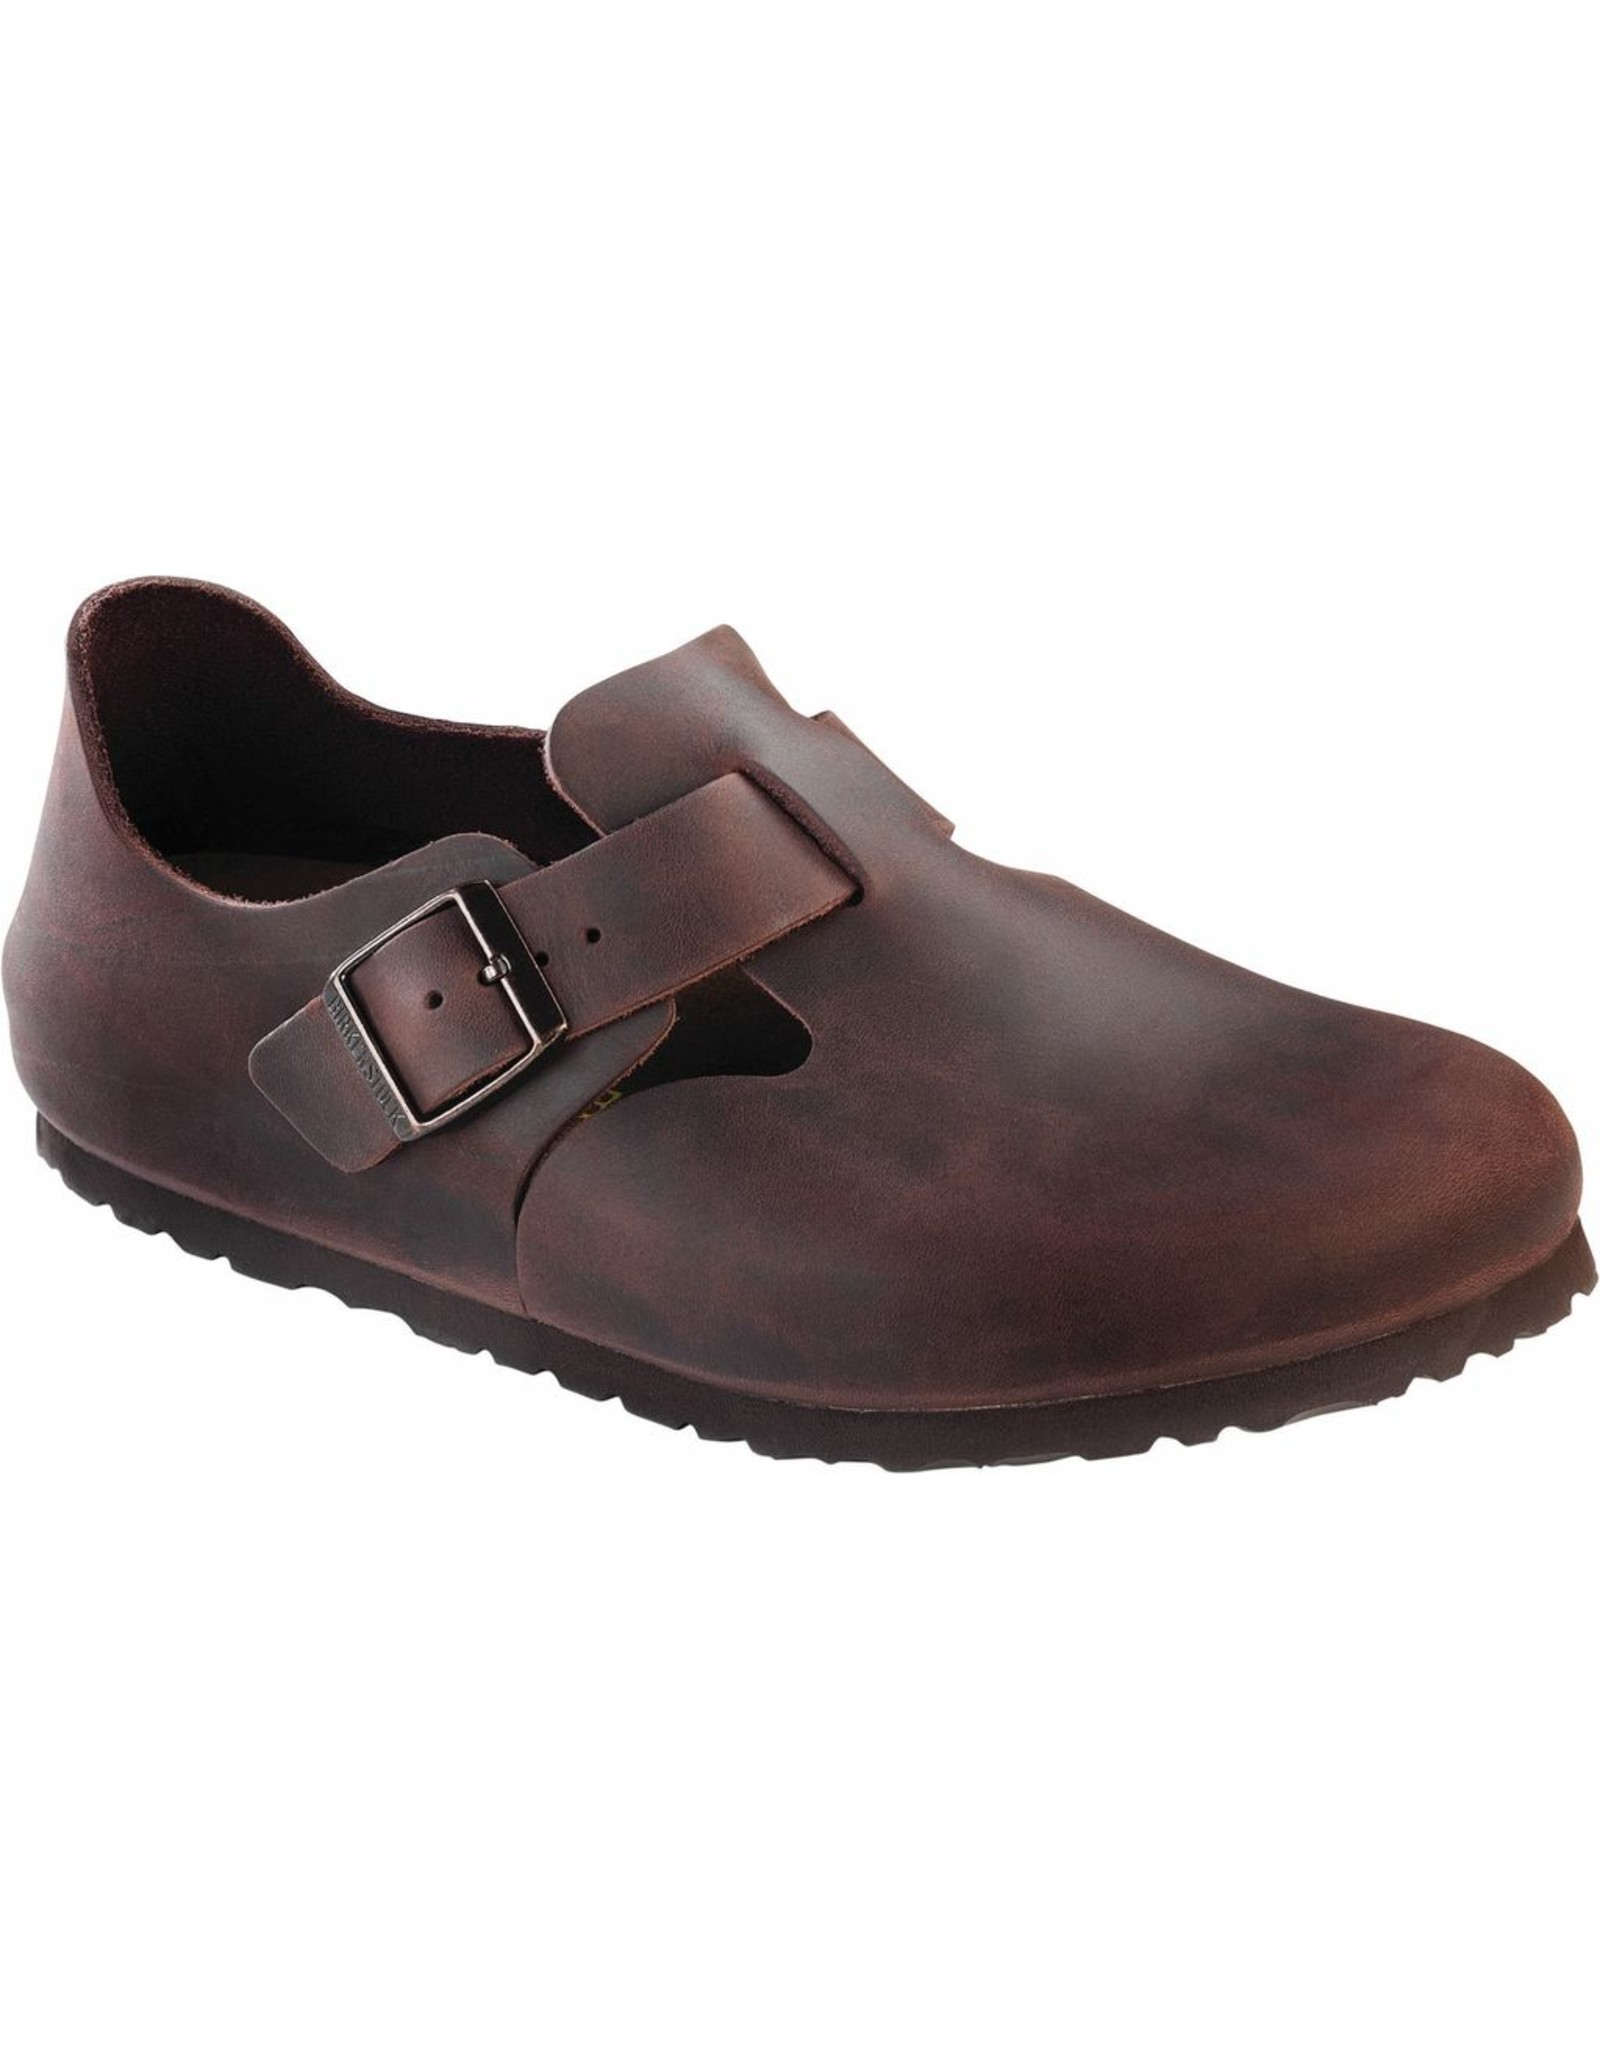 Birkenstock London Habana Oiled Leather